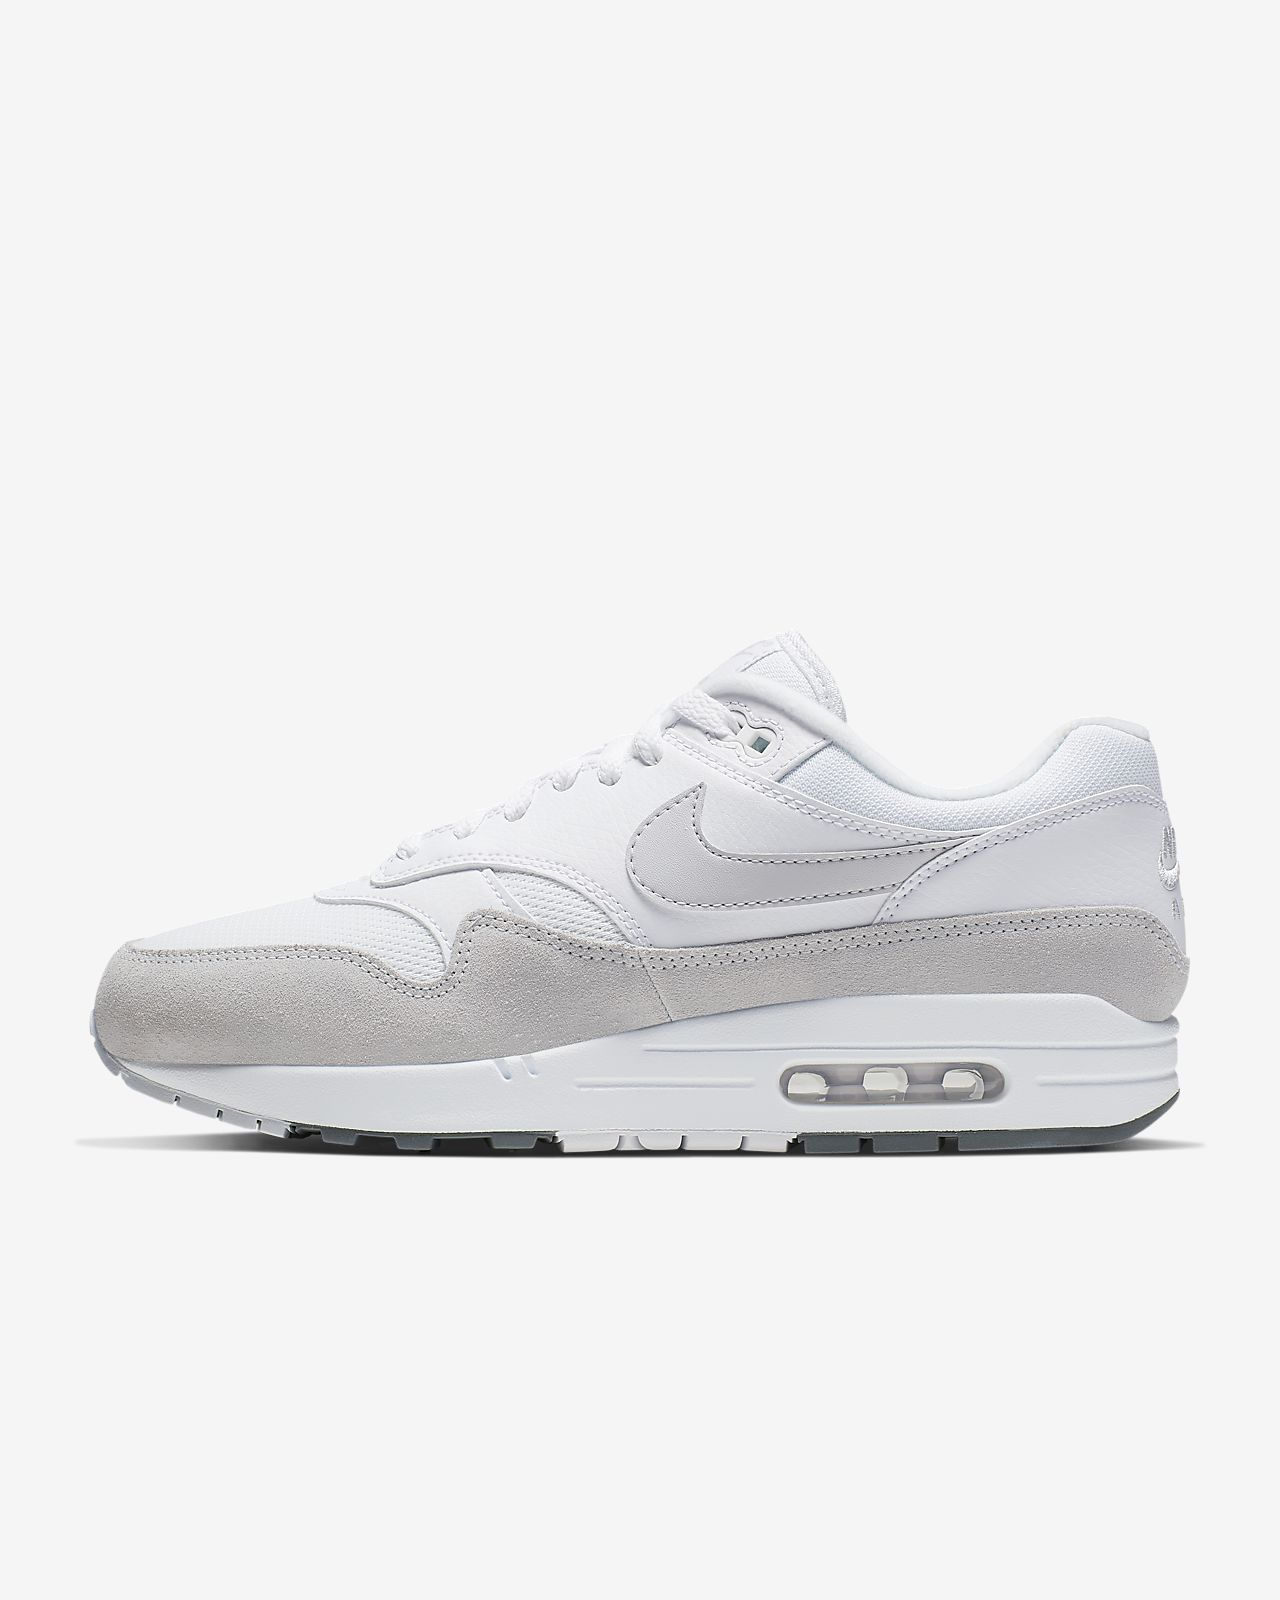 314daa24fc Nike Air Max 1 Men s Shoe. Nike.com GB